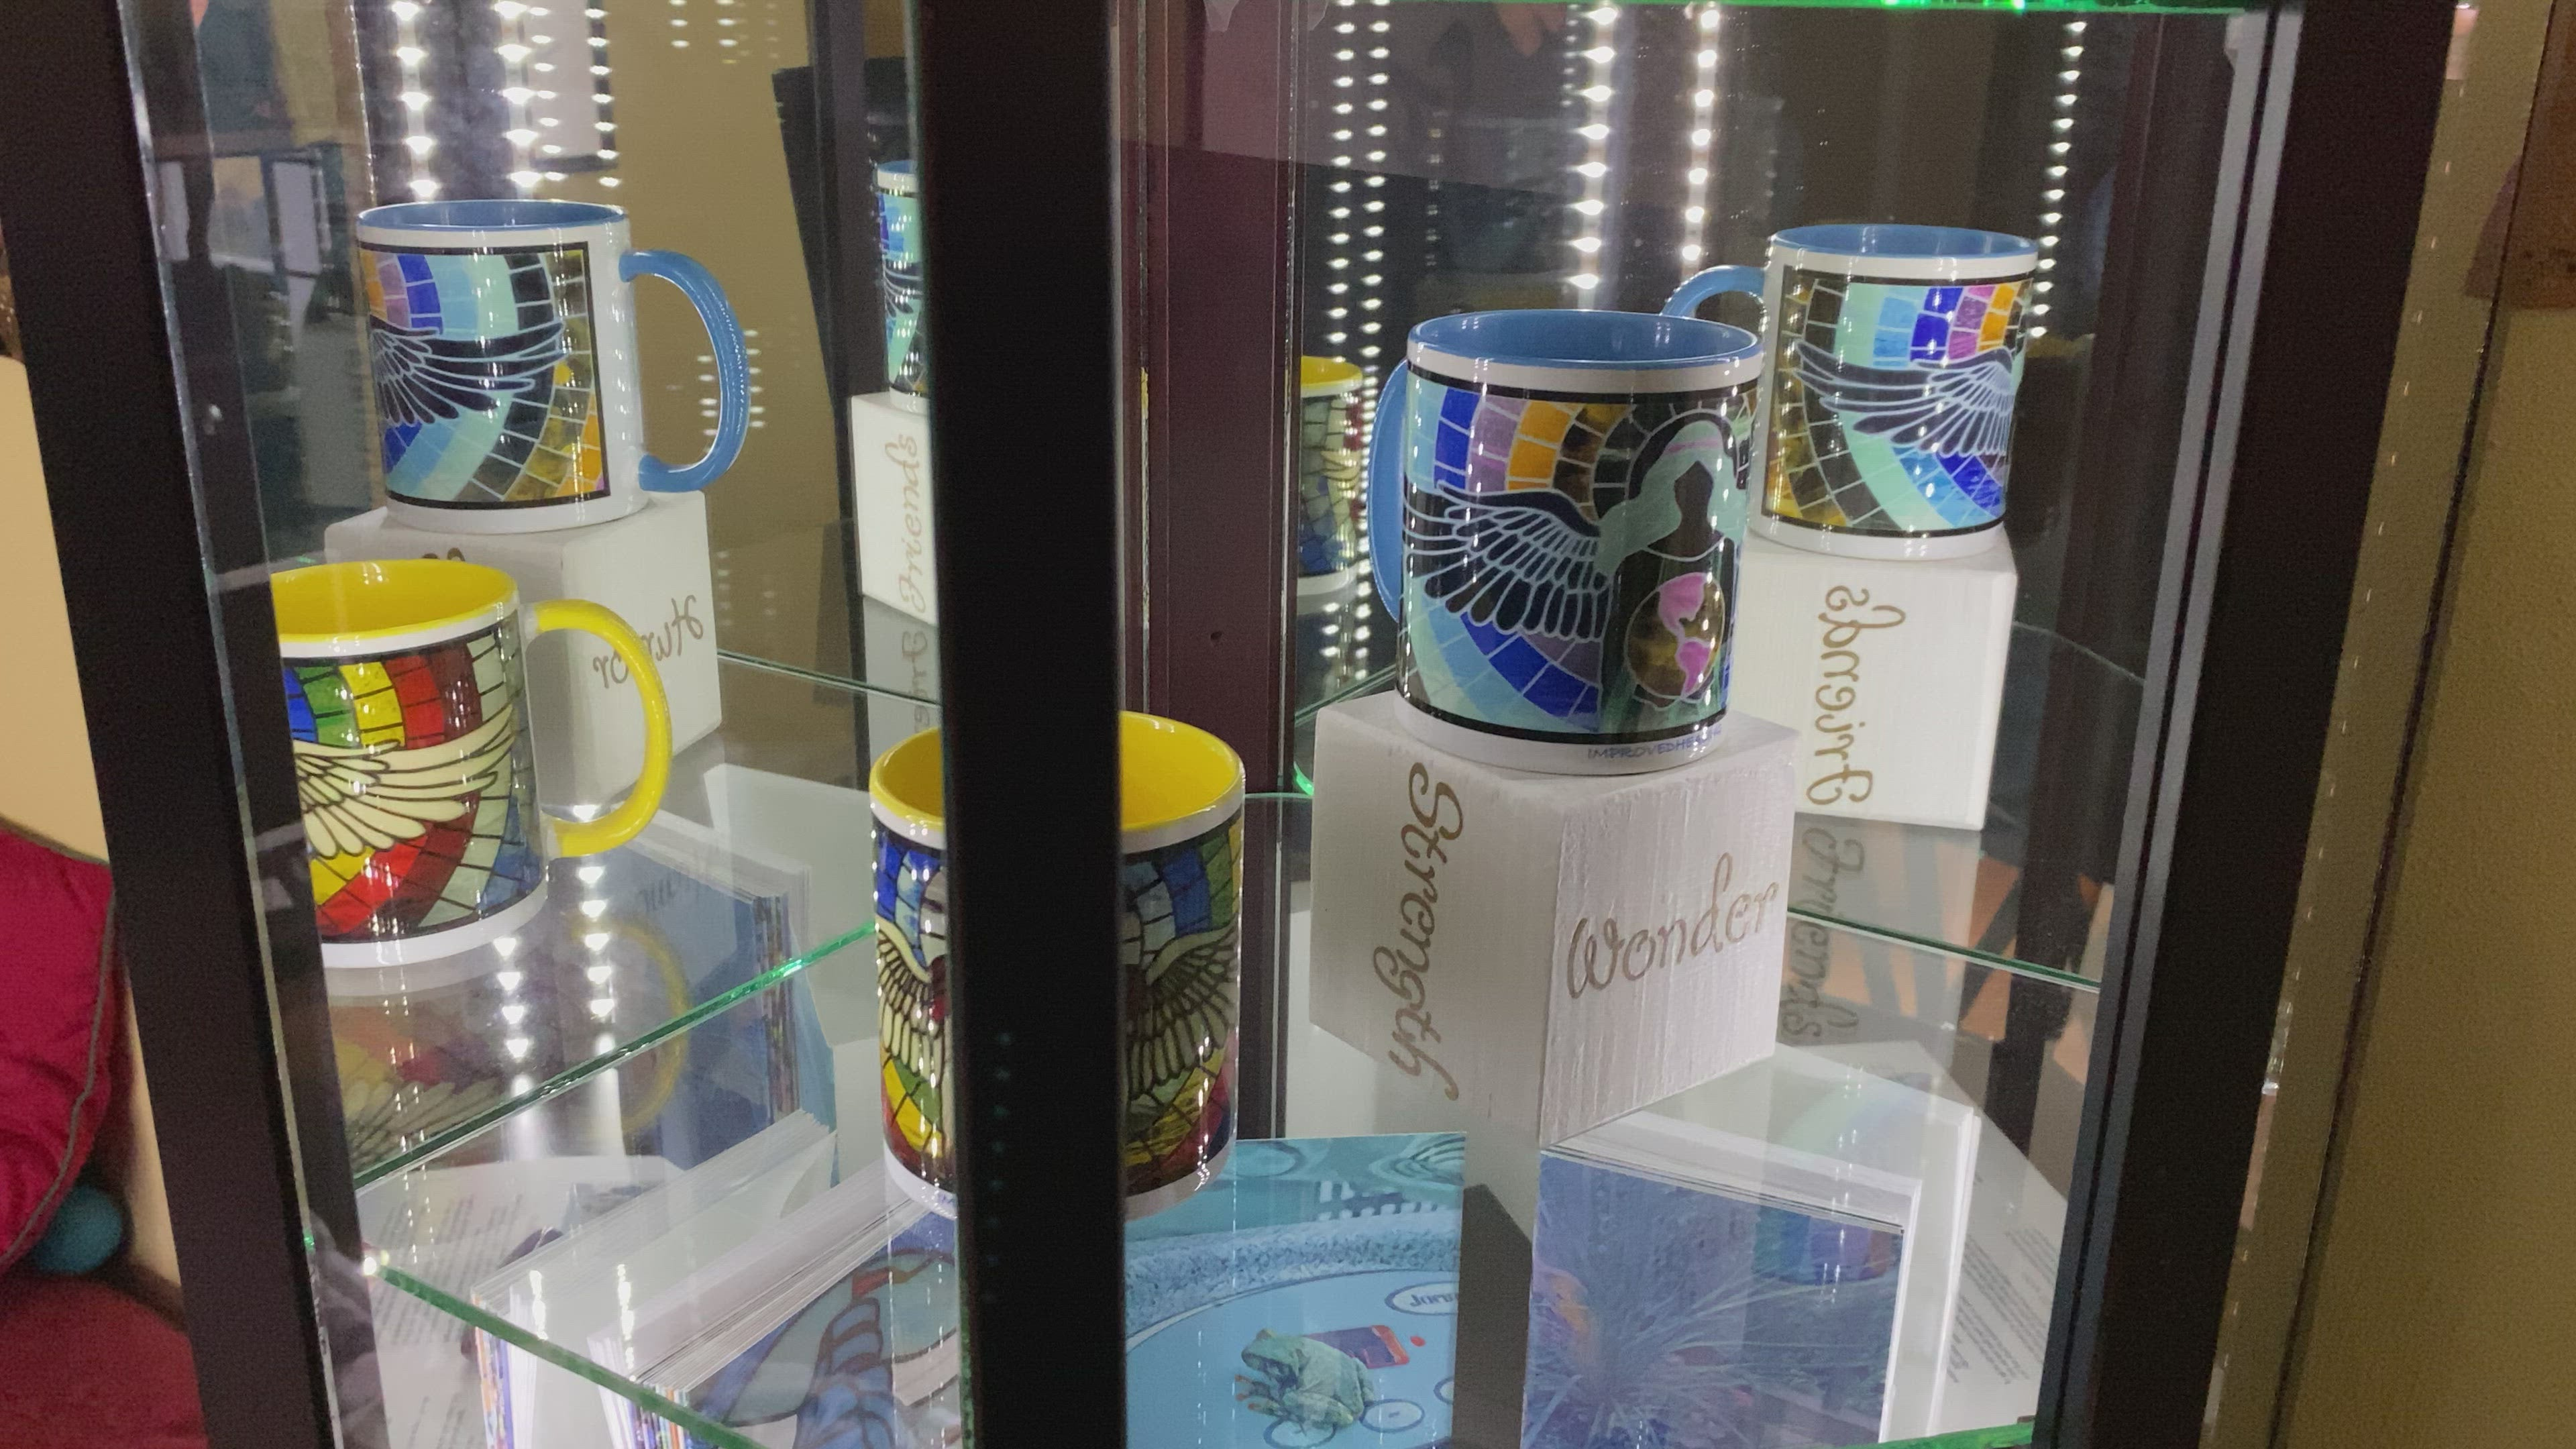 Video of colorful angel mugs in a mirrored cabinet